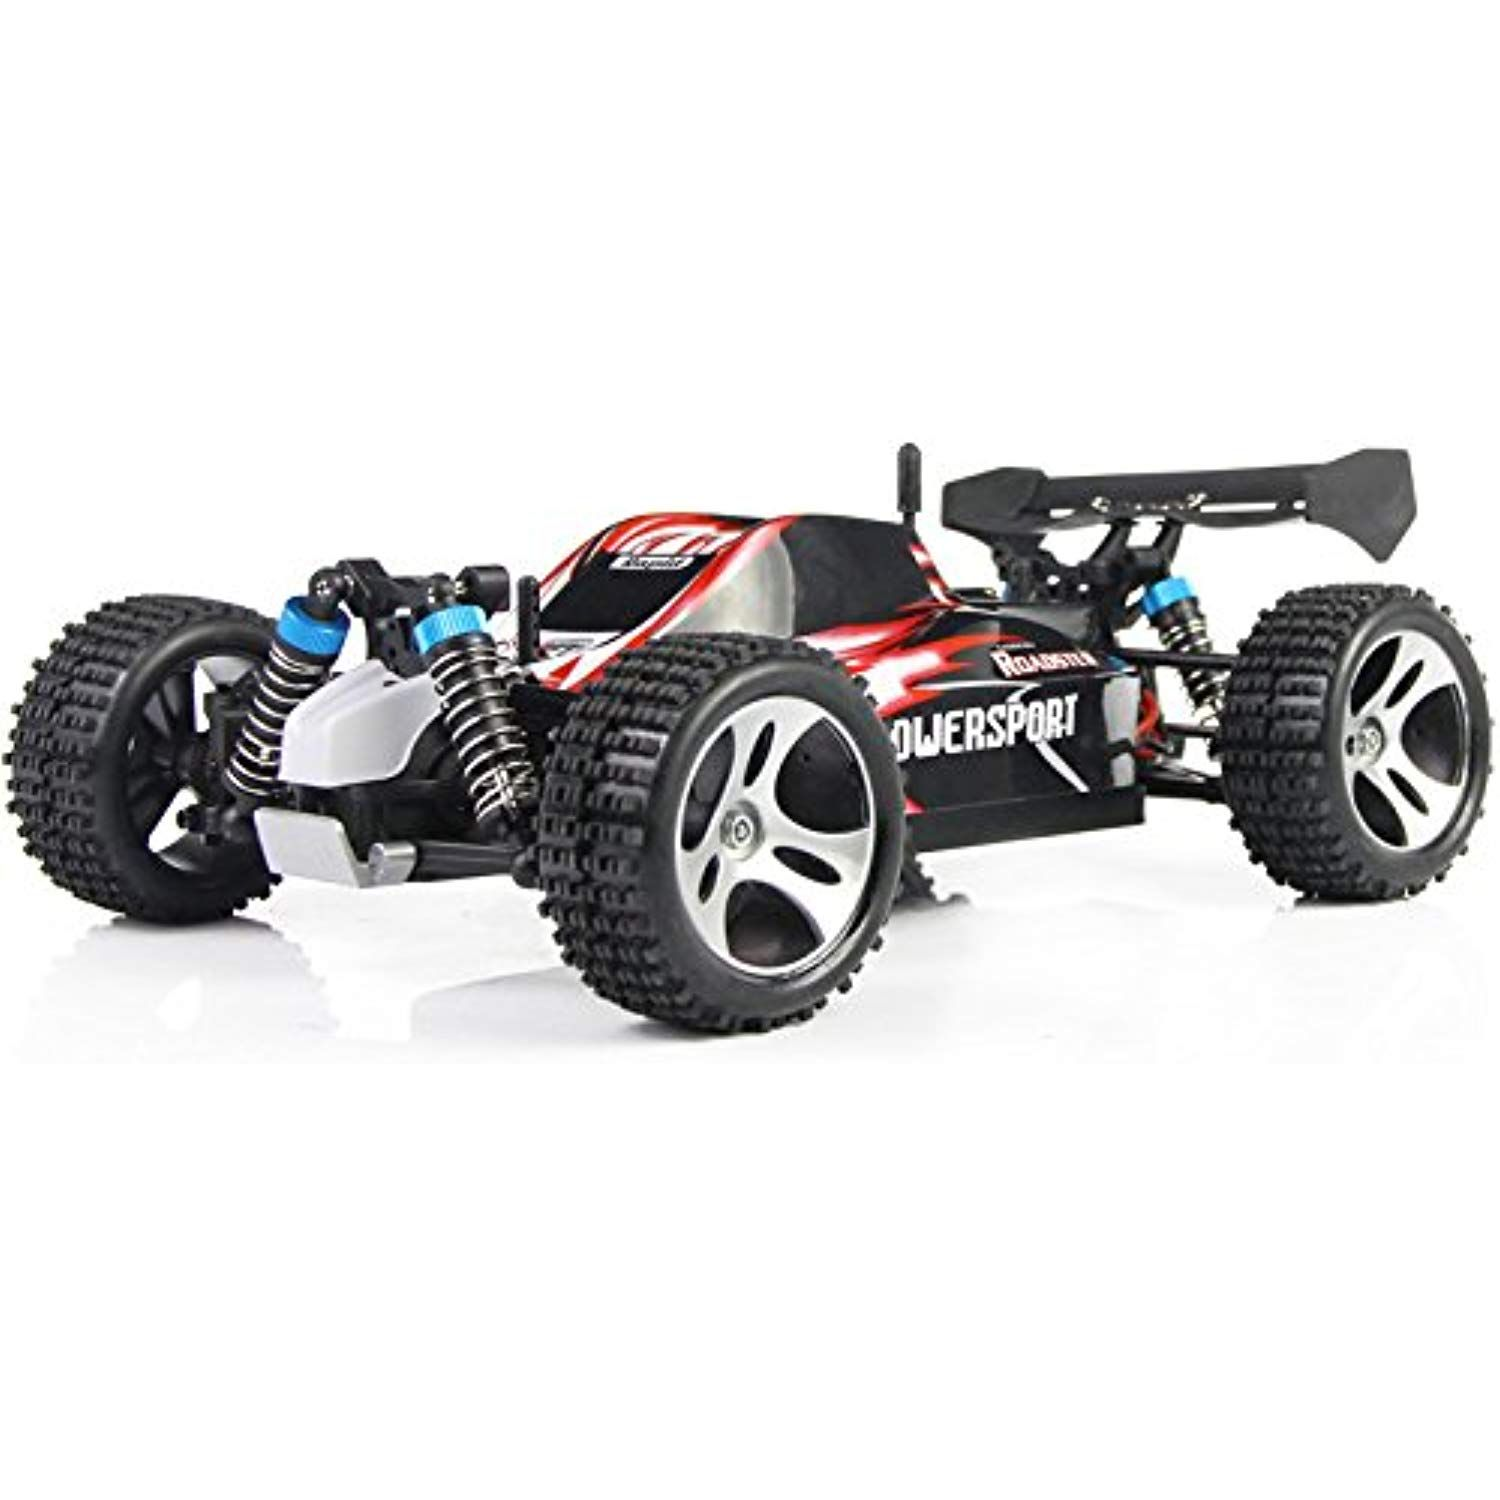 Amyove Racing Car Toy Rc Mini Car Wltoys A959 2 4g 1 18 Scale Remote Control Off Road Racing Car Suv To Remote Control Trucks Rc Car Remote Remote Control Cars